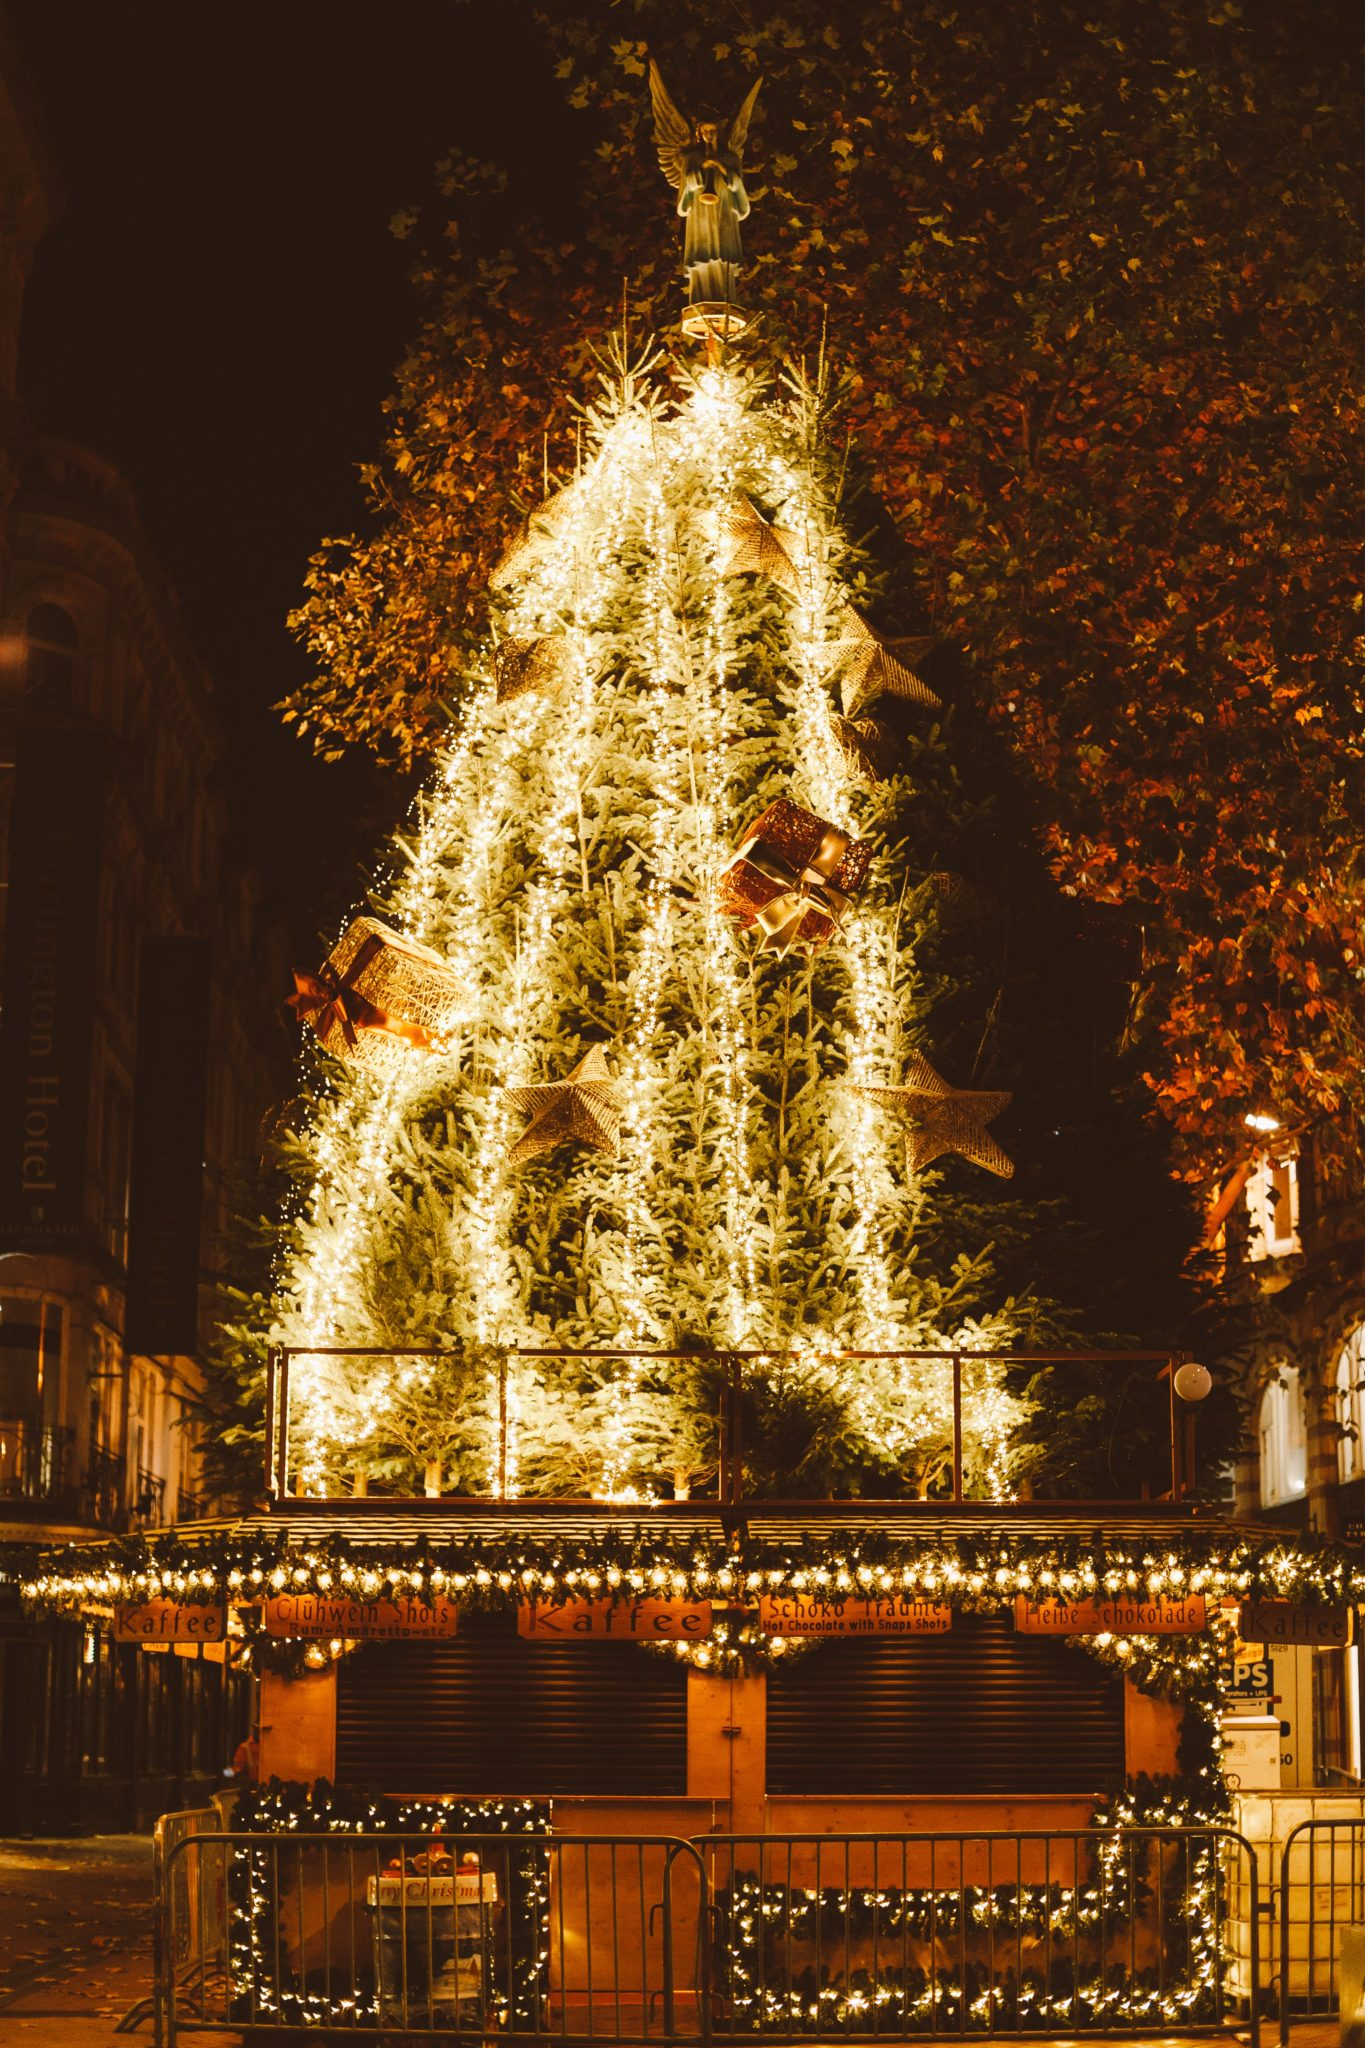 How to Plan Your Visit to One of Europe's Christmas Markets